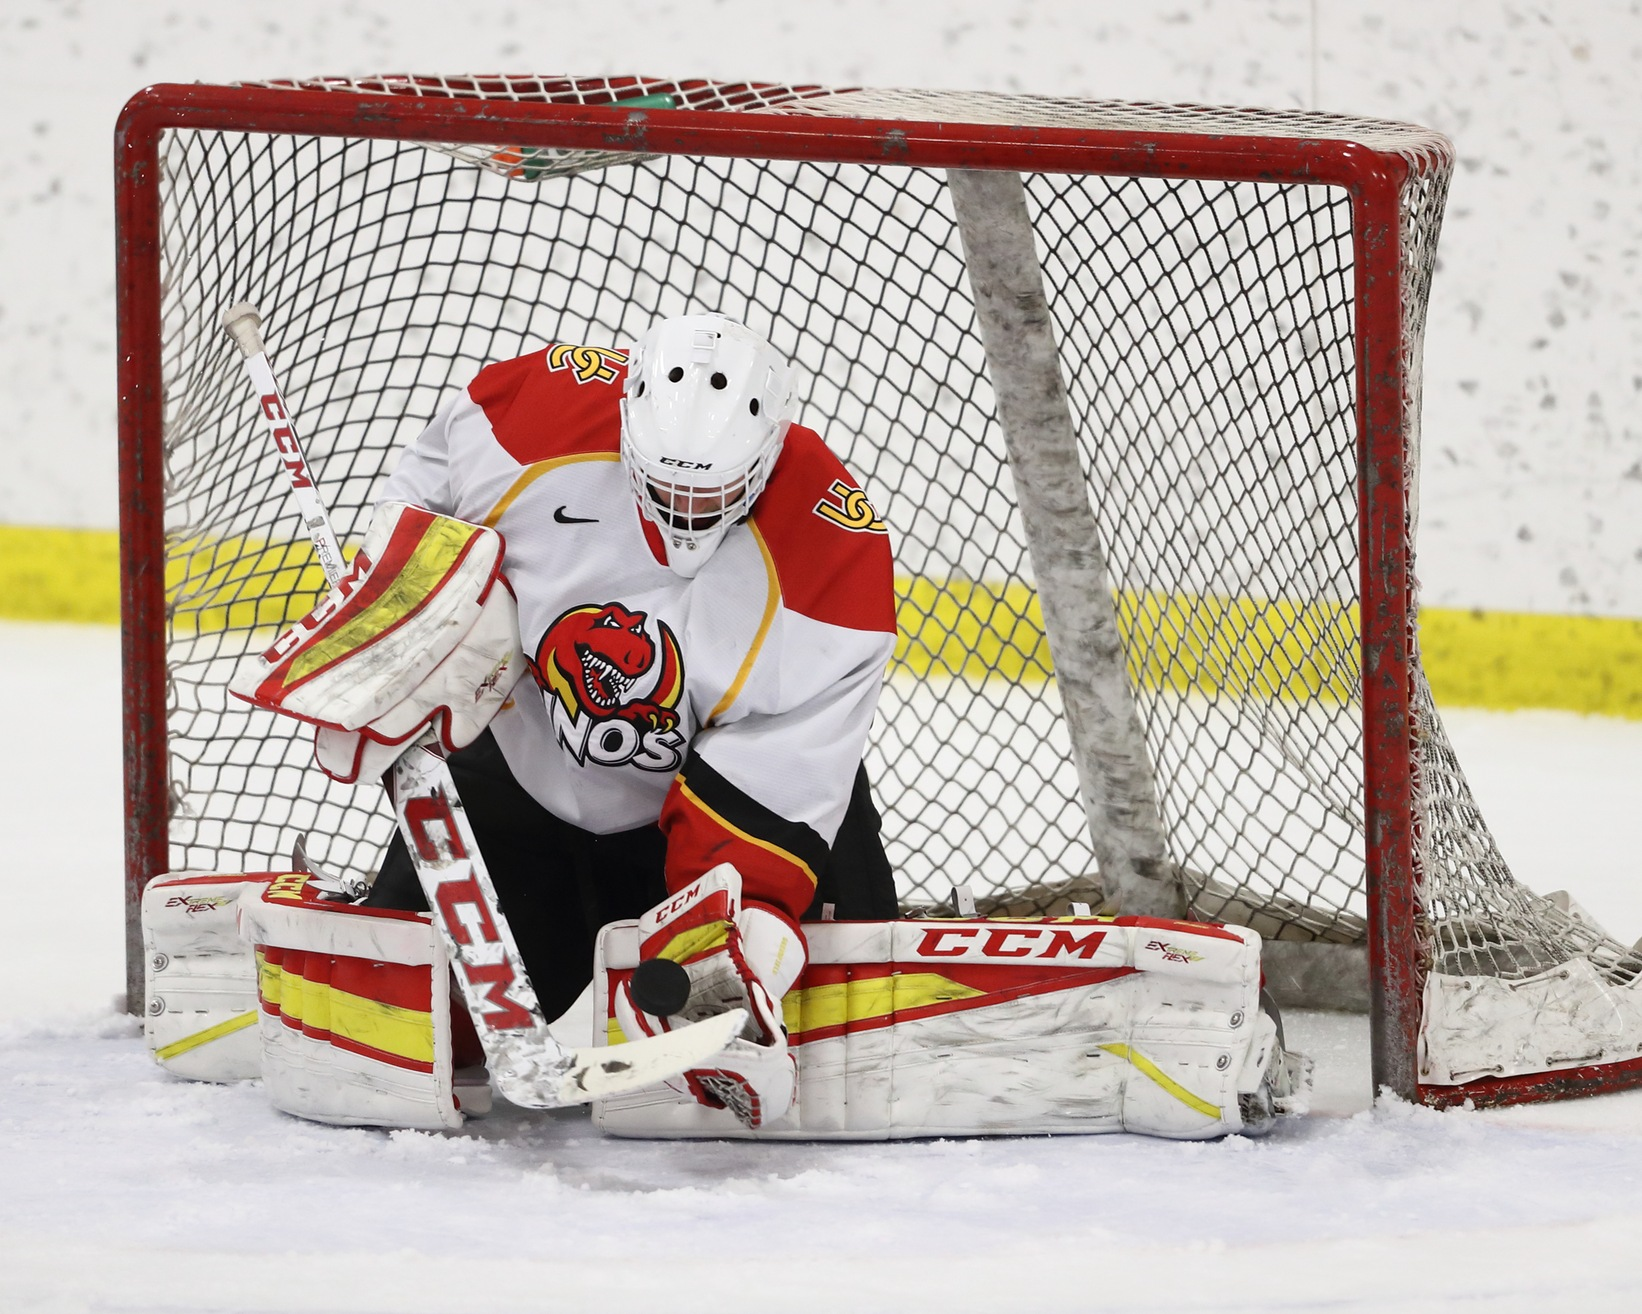 The Sunshine State is not necessarily a hotbed for hockey in North America, but it is where rookie goalie Matthew Greenfield of the Calgary Dinos calls home.